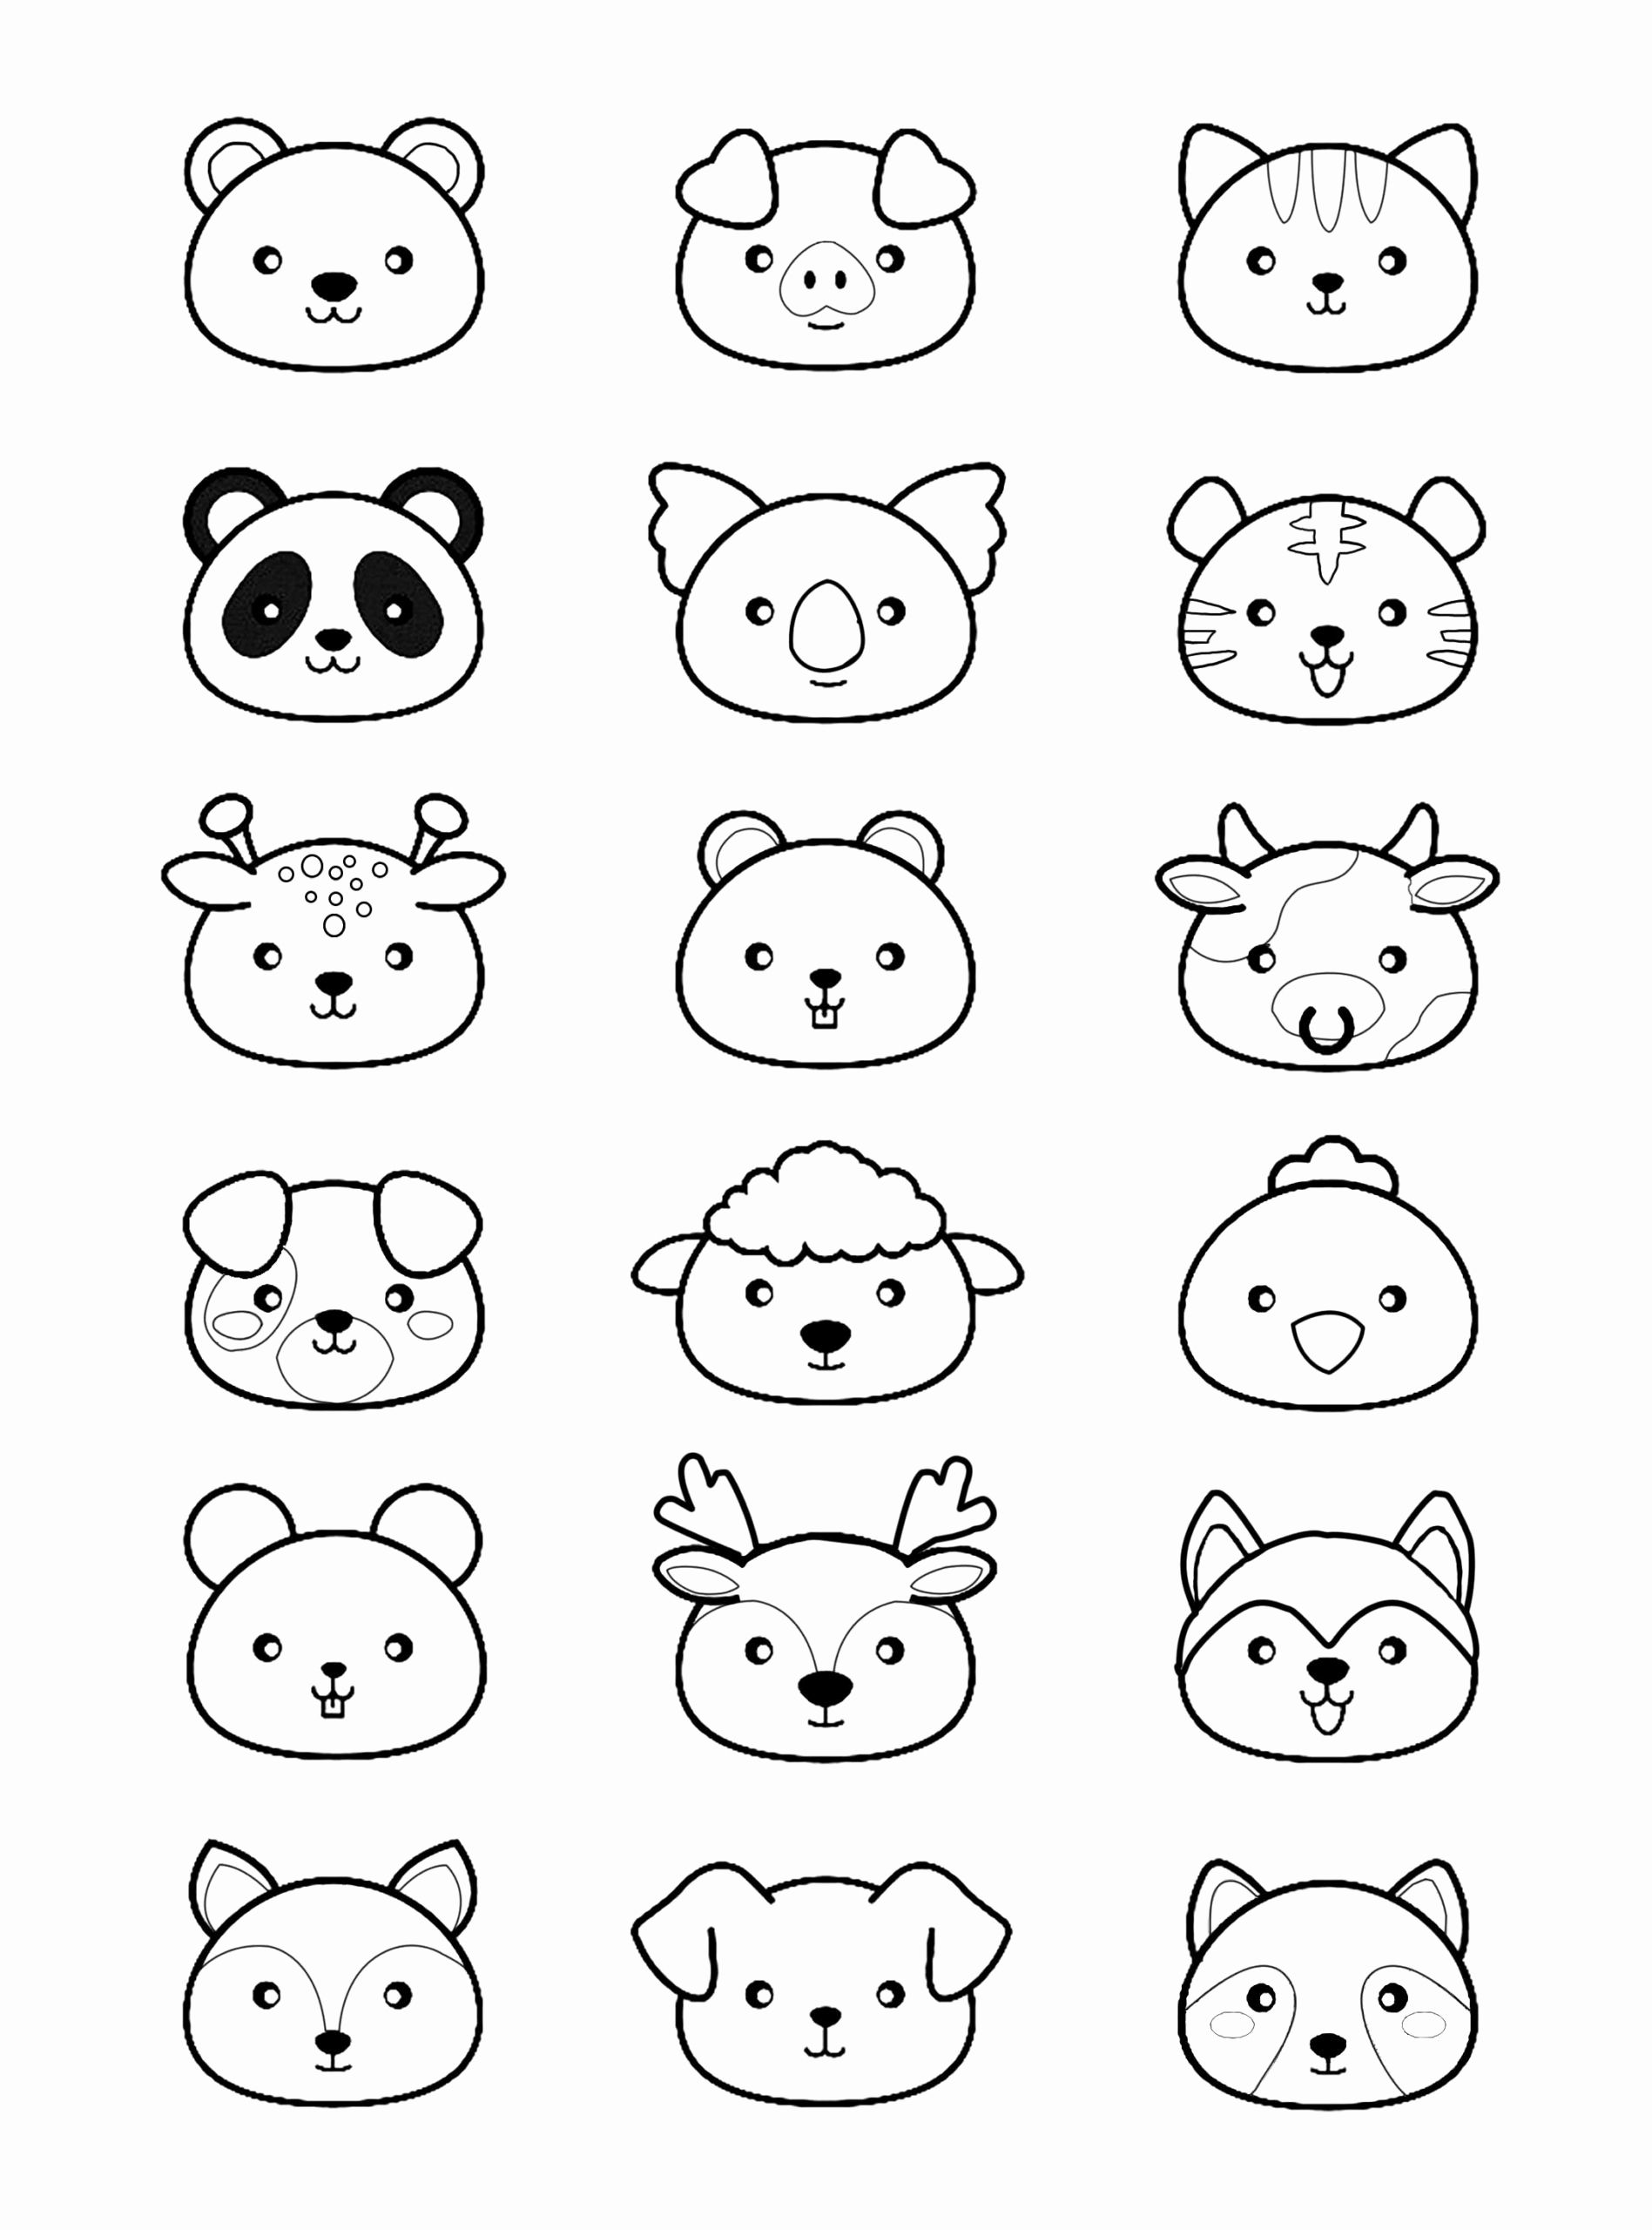 Cool Kawaii Animal Coloring Pages For Kids Panda Coloring Pages Cute Kawaii Drawings Cute Coloring Pages